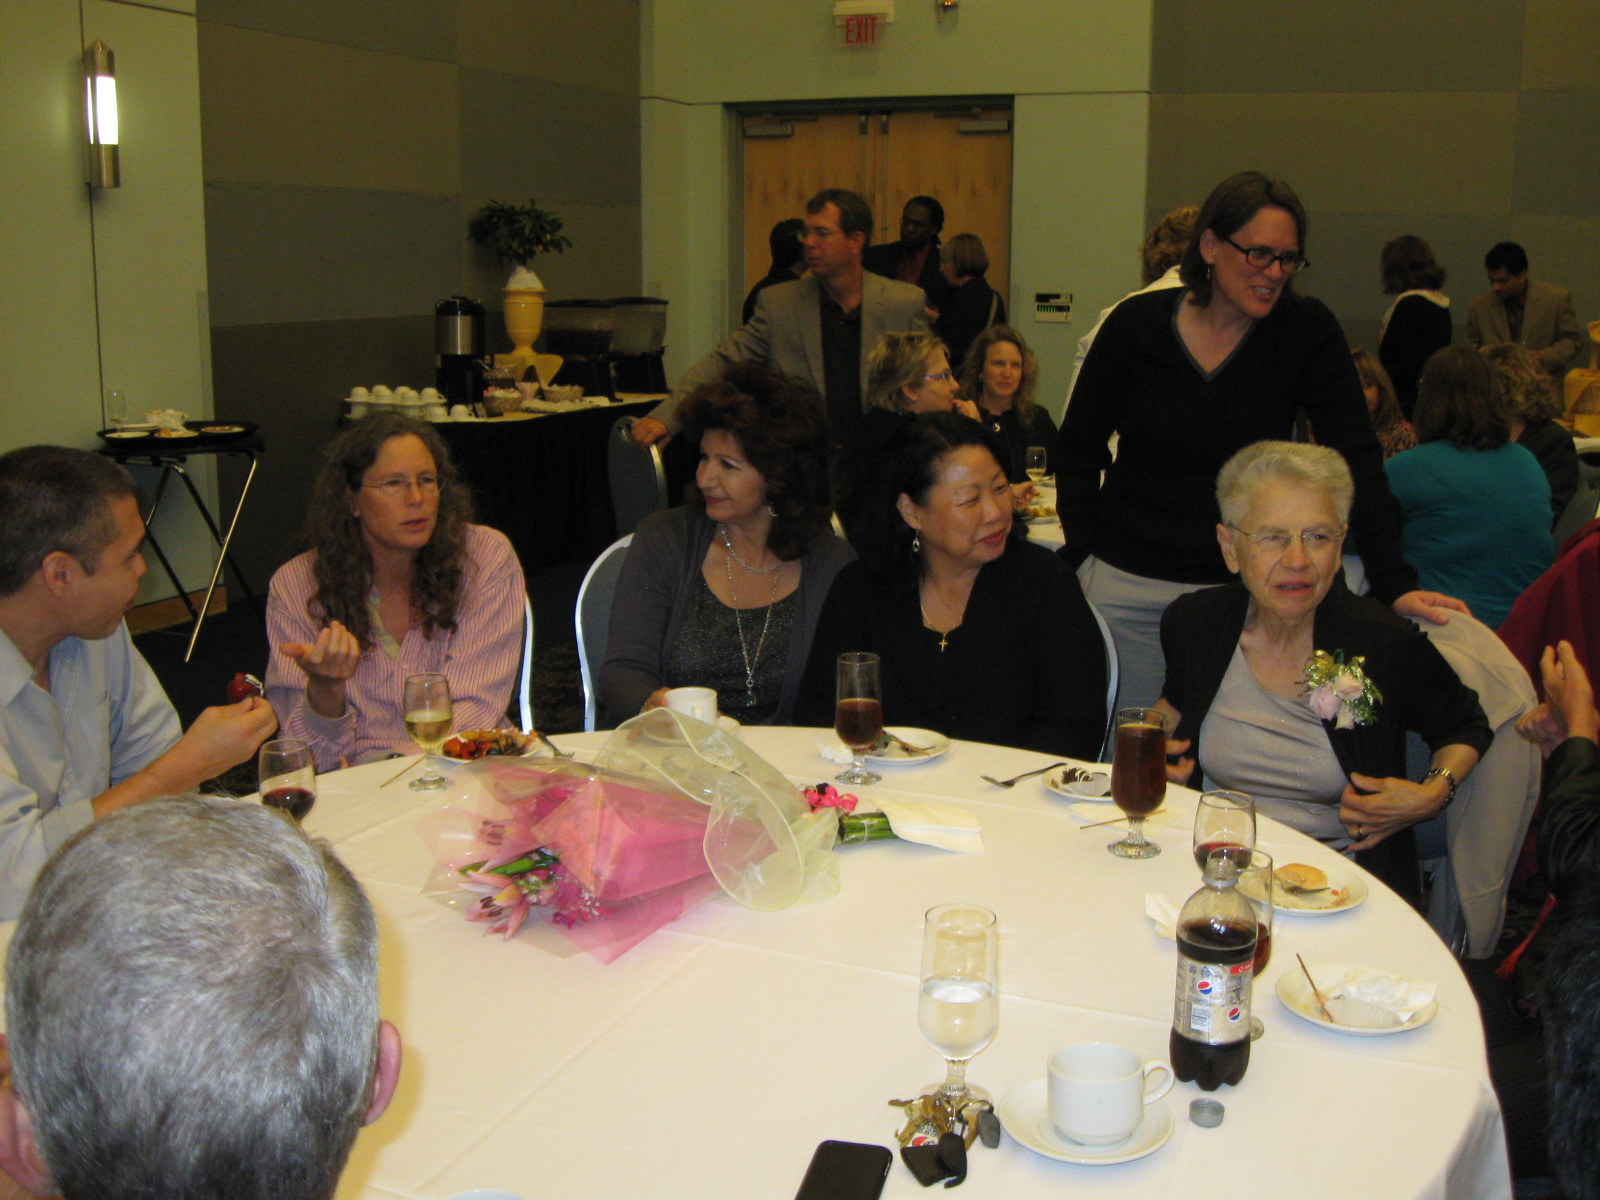 Richard, Kayley, Yvonne, Donna, Jenny, and Sheila